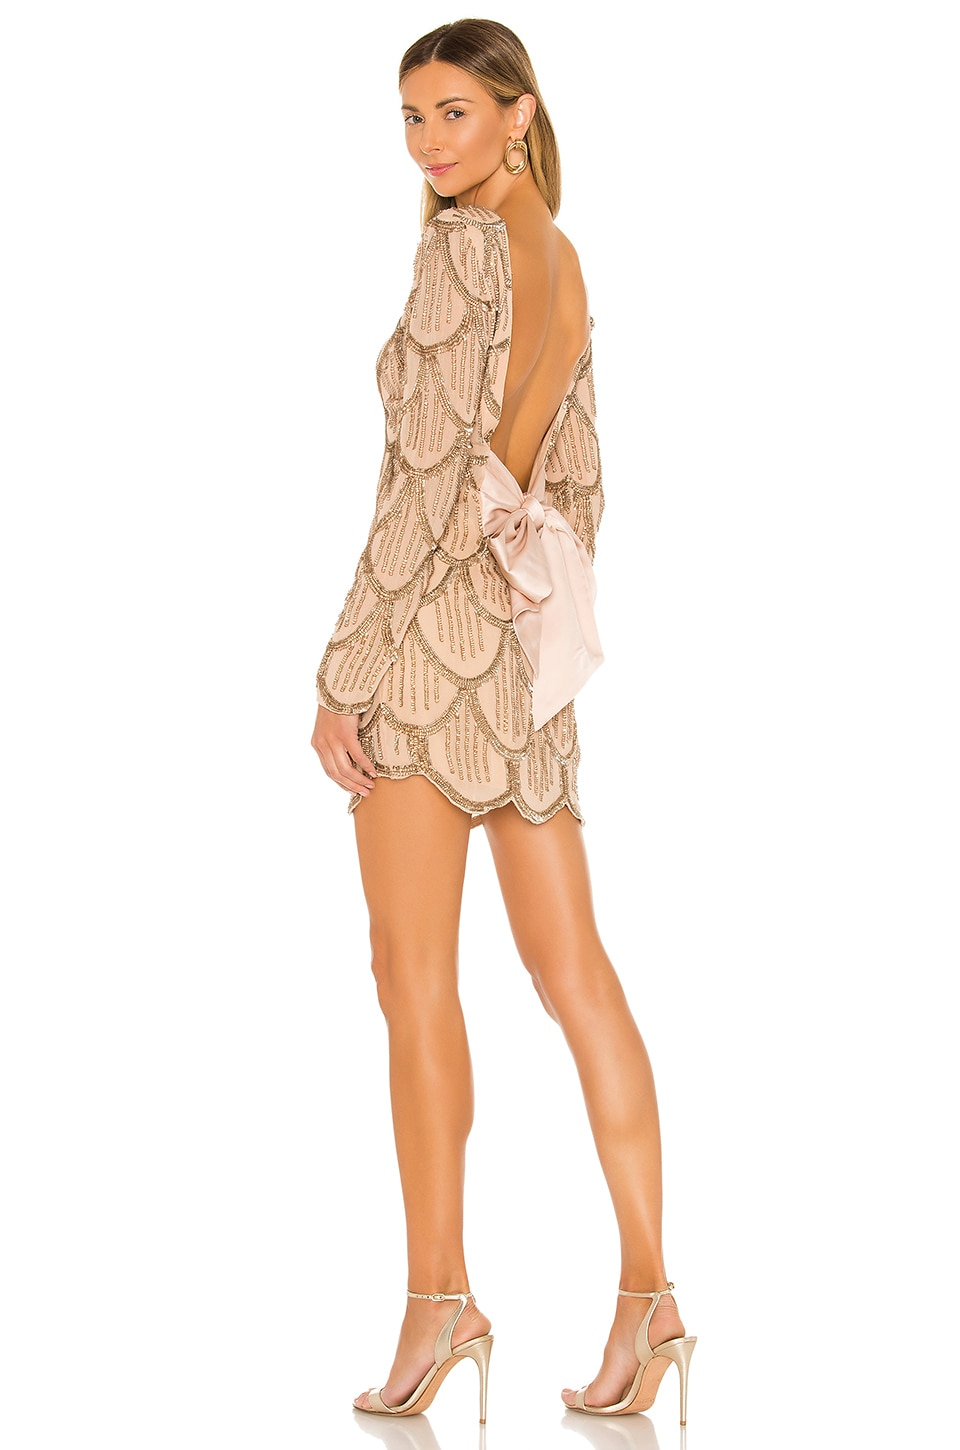 NBD Tristan Mini Dress in Gold & Nude